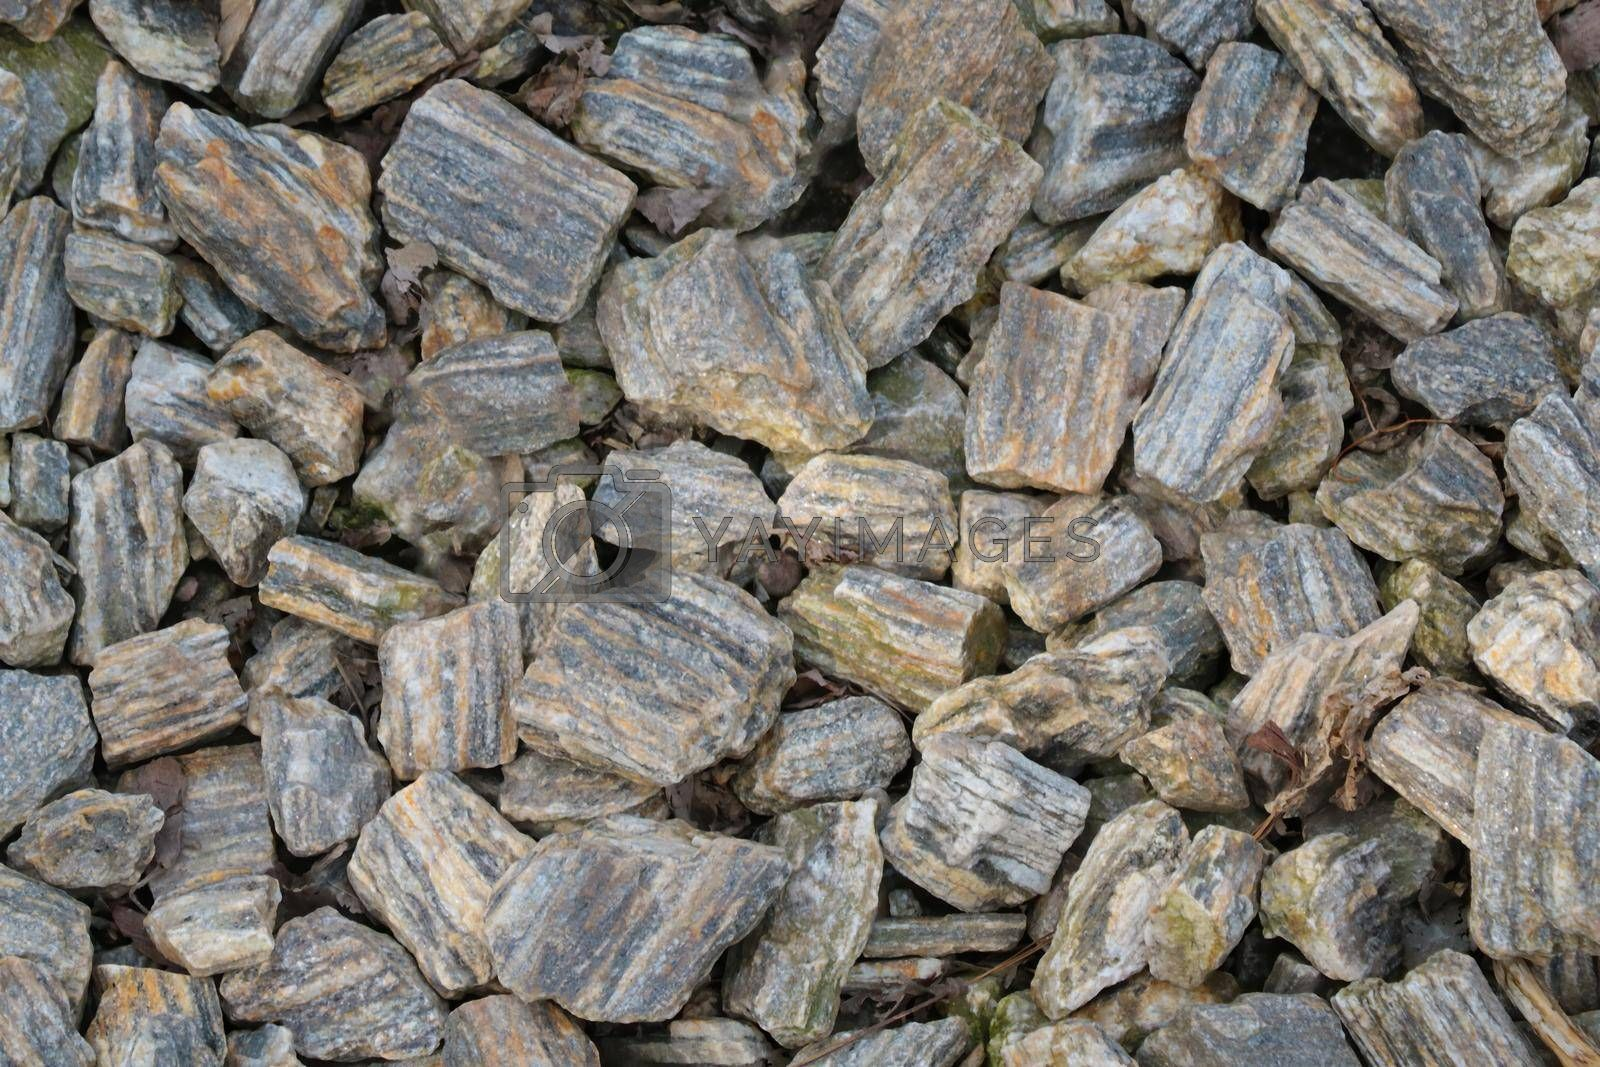 Royalty free image of Top view of small pieces of rock on the ground. Background, texture of stone. by kip02kas